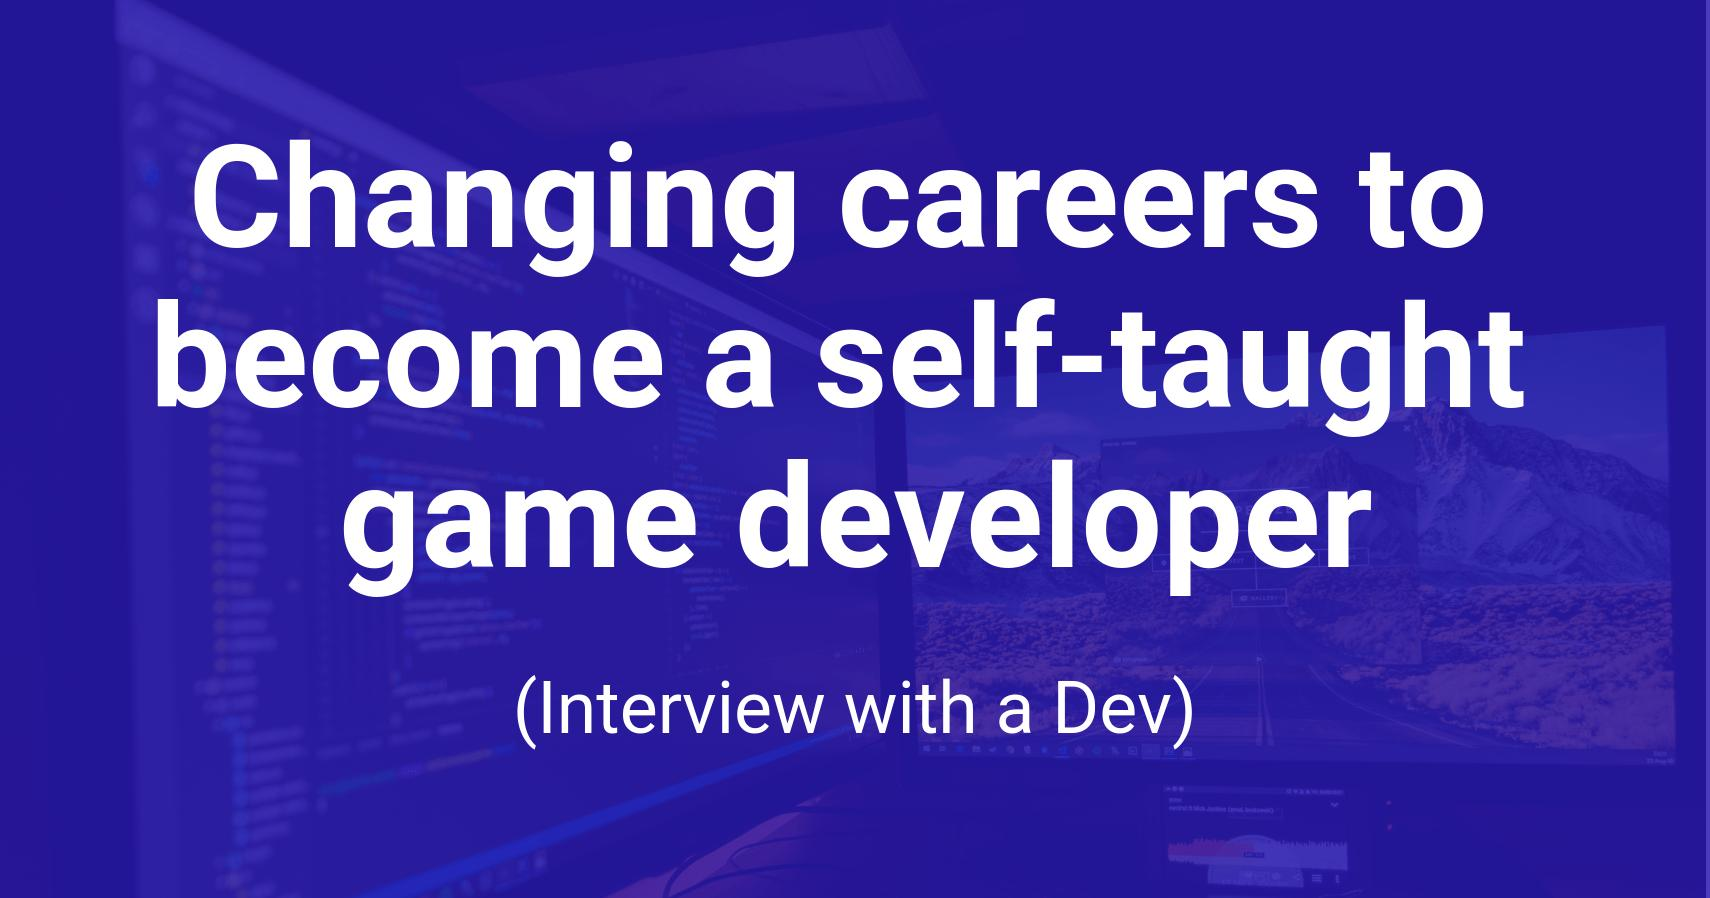 Changing careers game developer